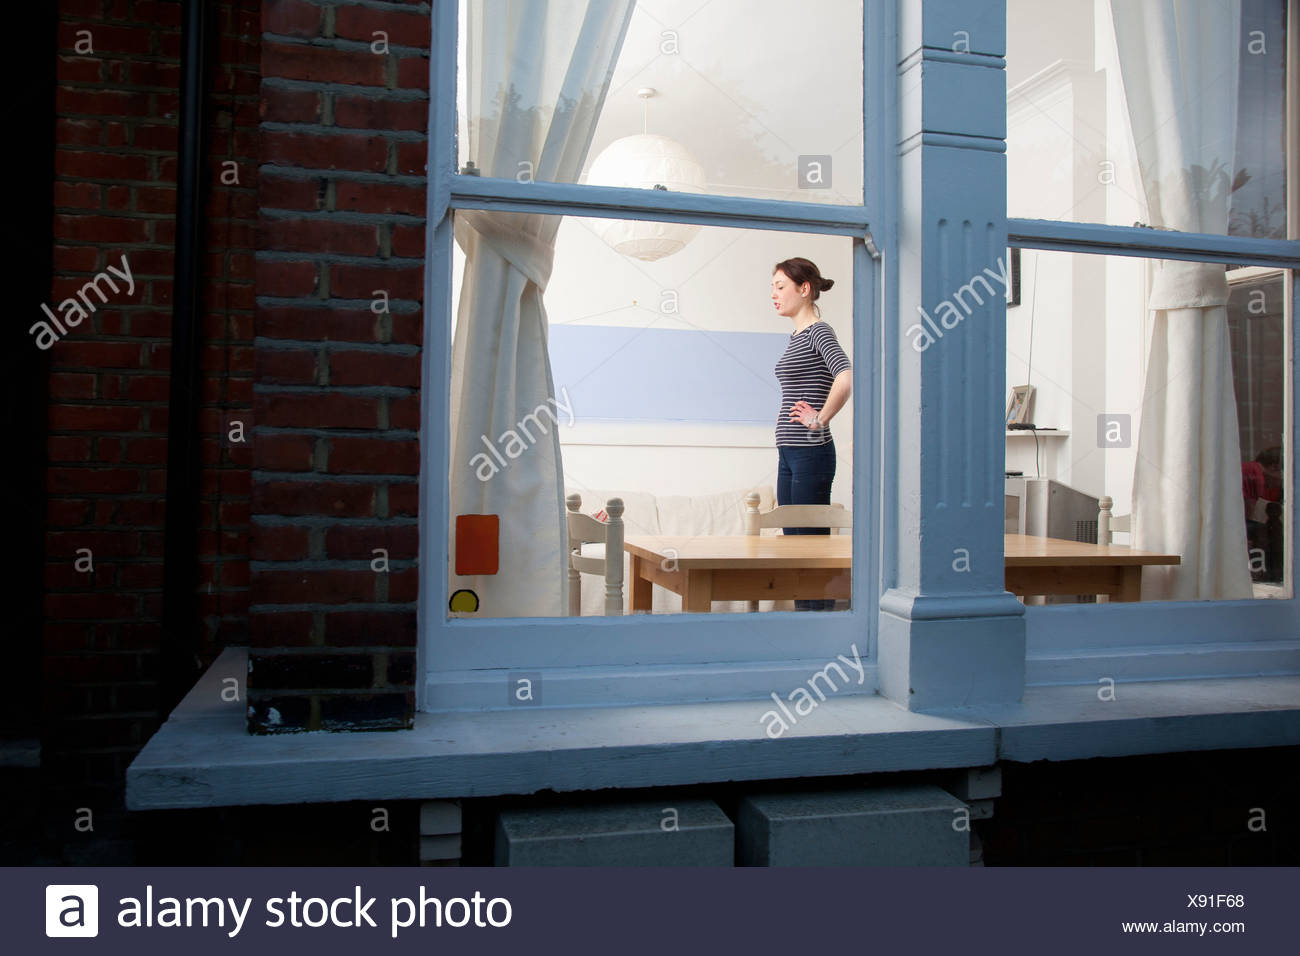 Woman viewed through window - Stock Image